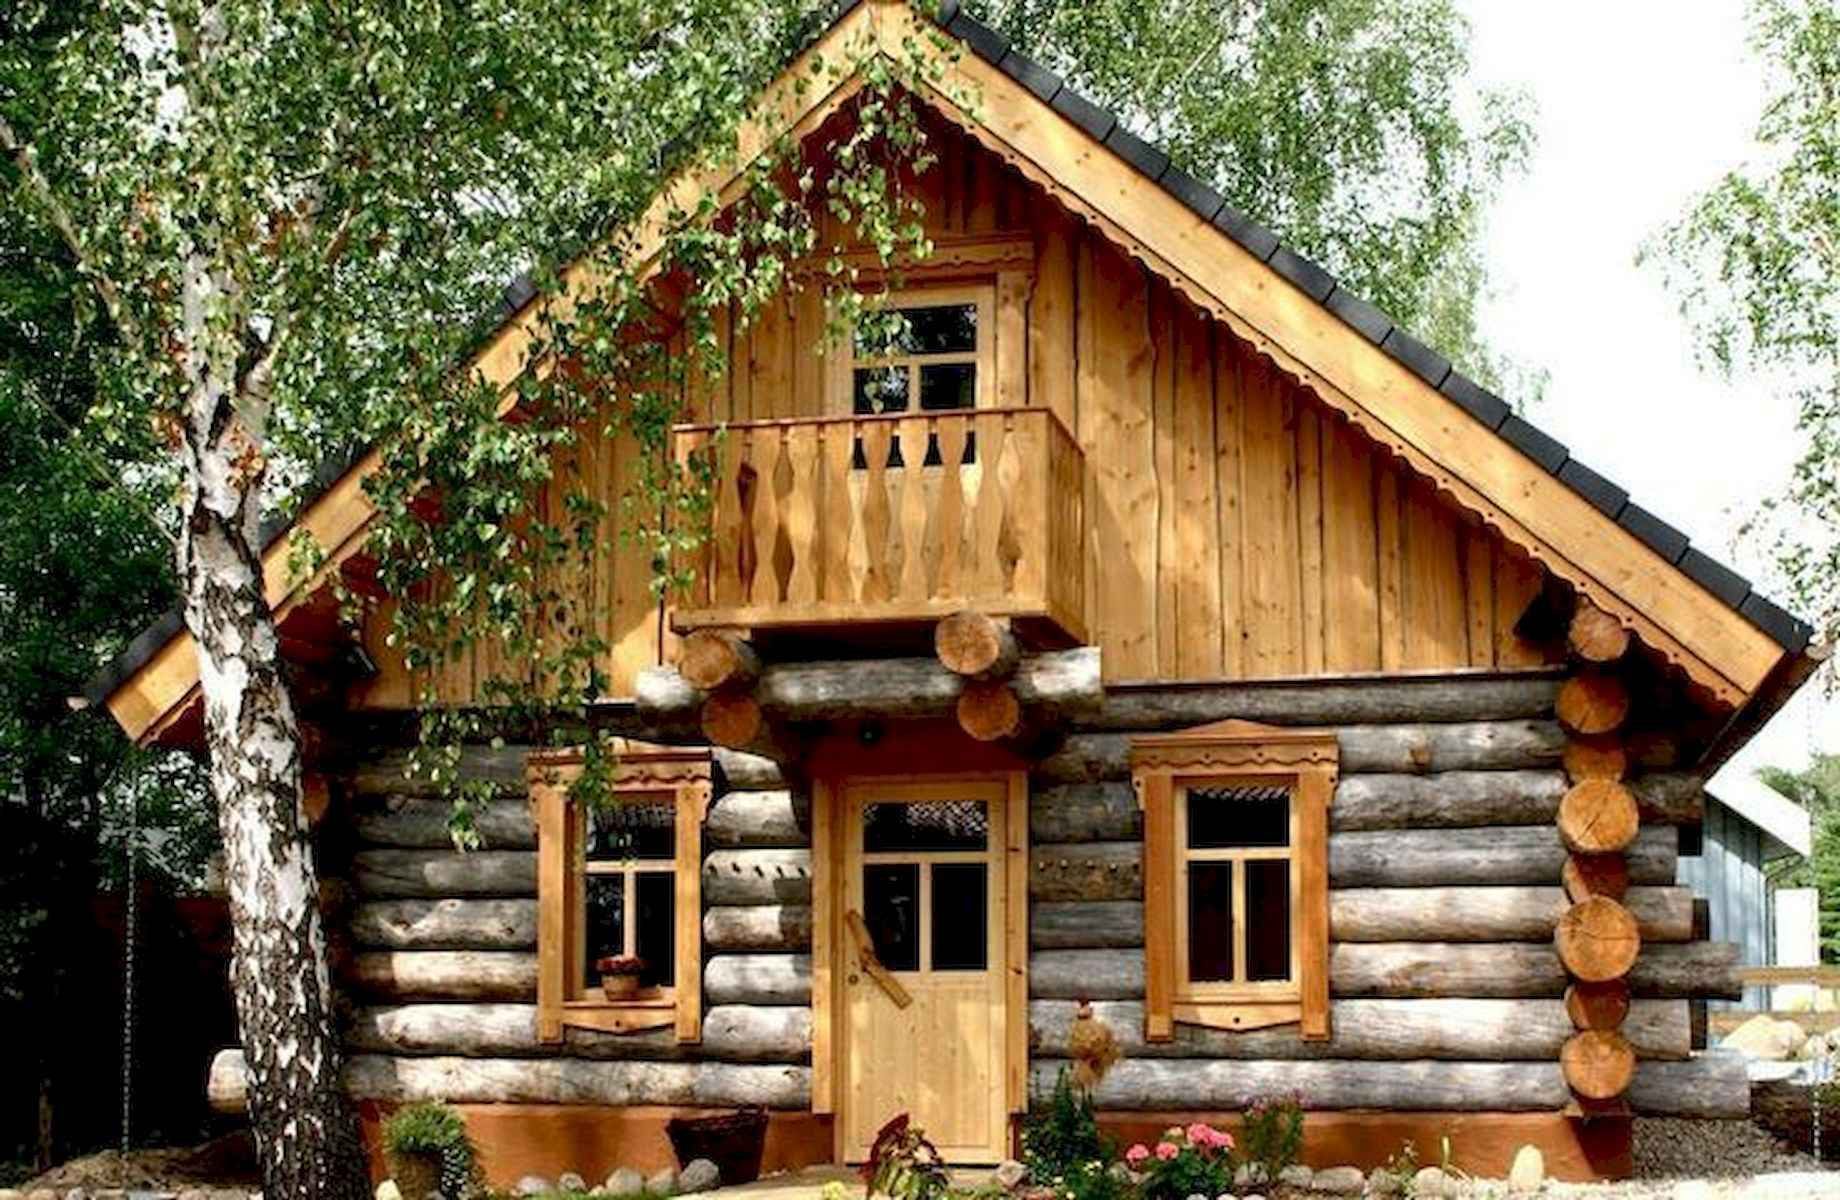 60 Rustic Log Cabin Homes Plans Design Ideas And Remodel (30)